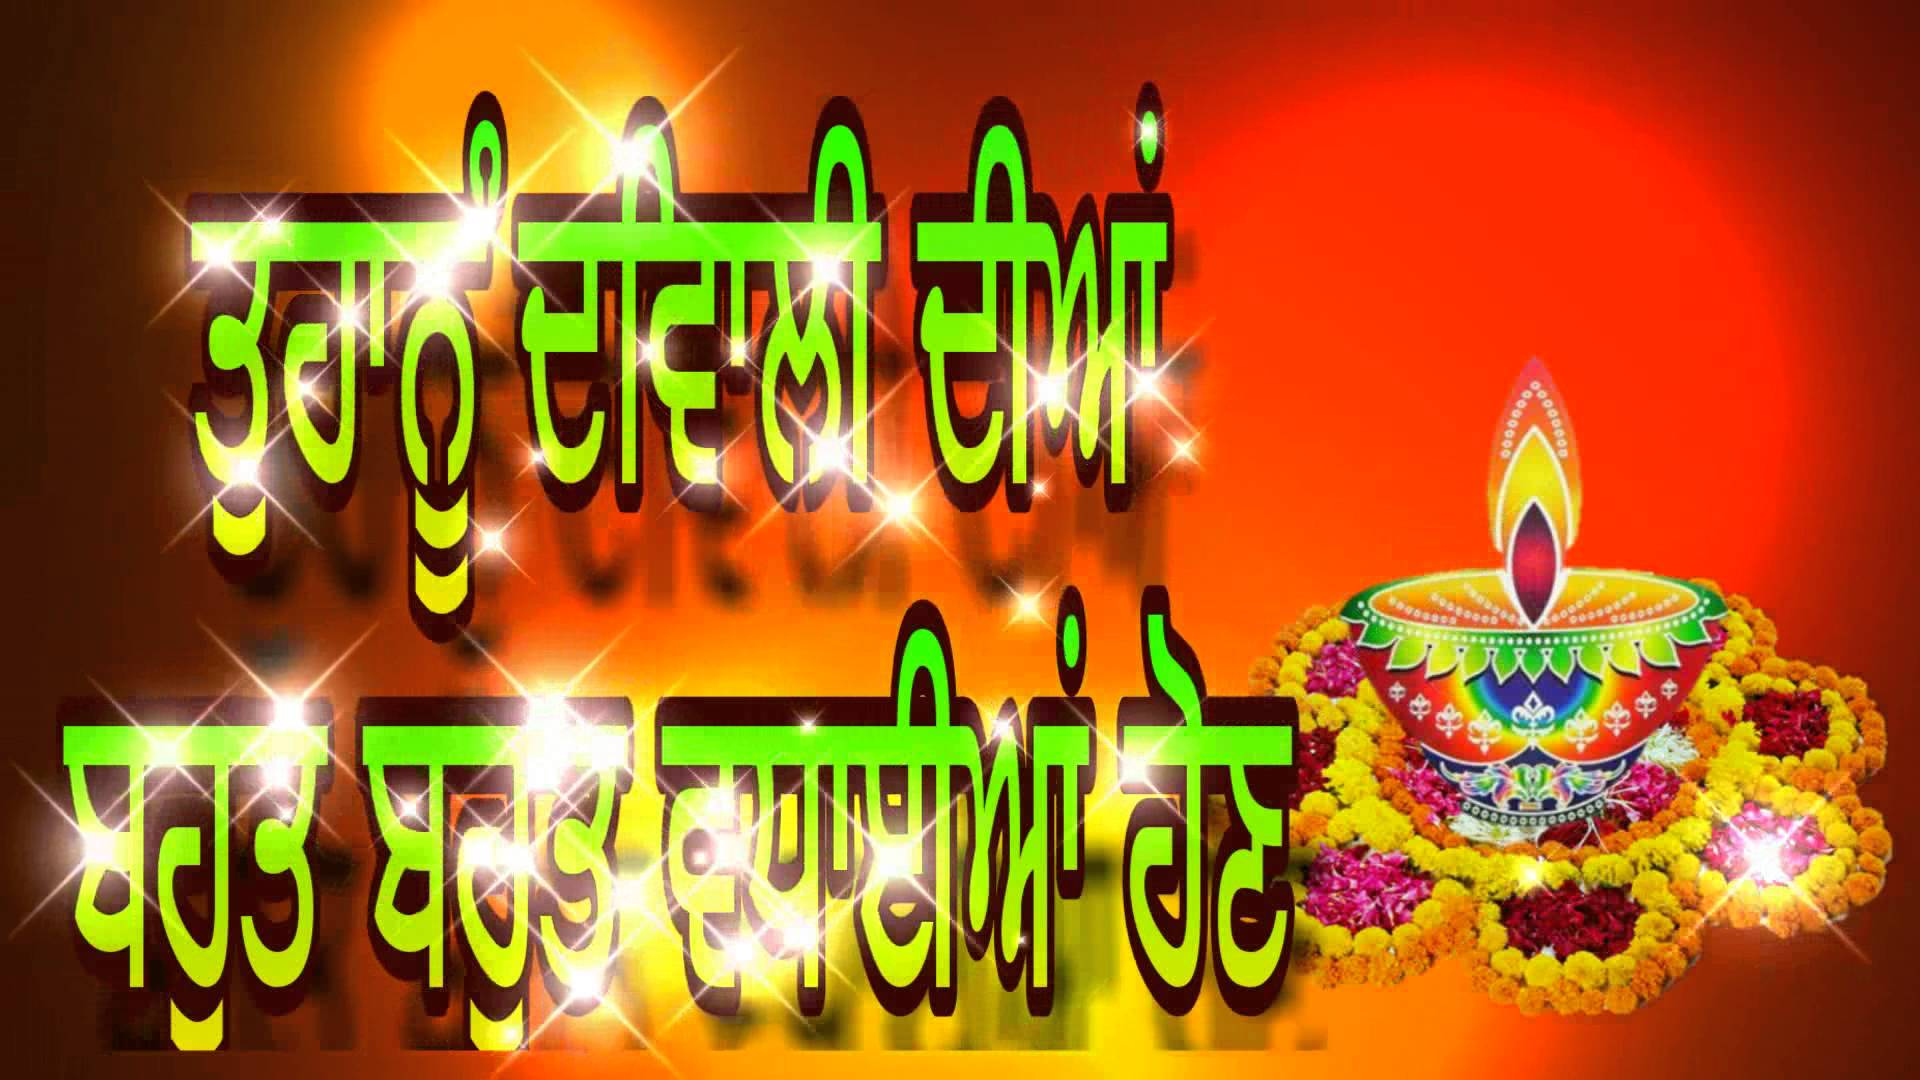 2017 Updated Happy Diwali Wishes Sms And Greetings Times24by7